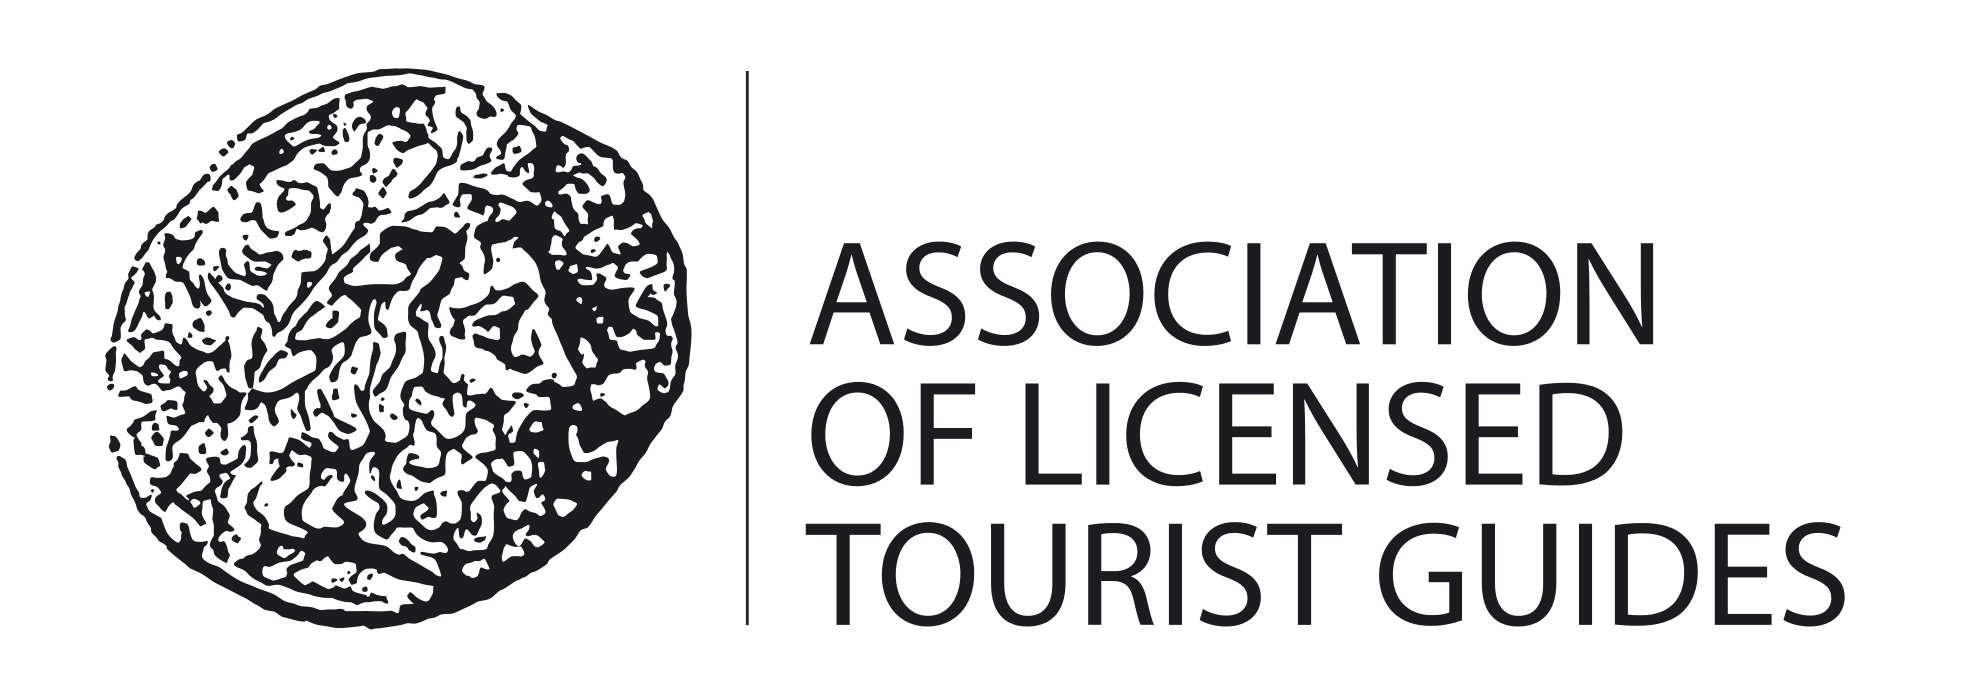 Visit the Association of Licensed Tourist Guides